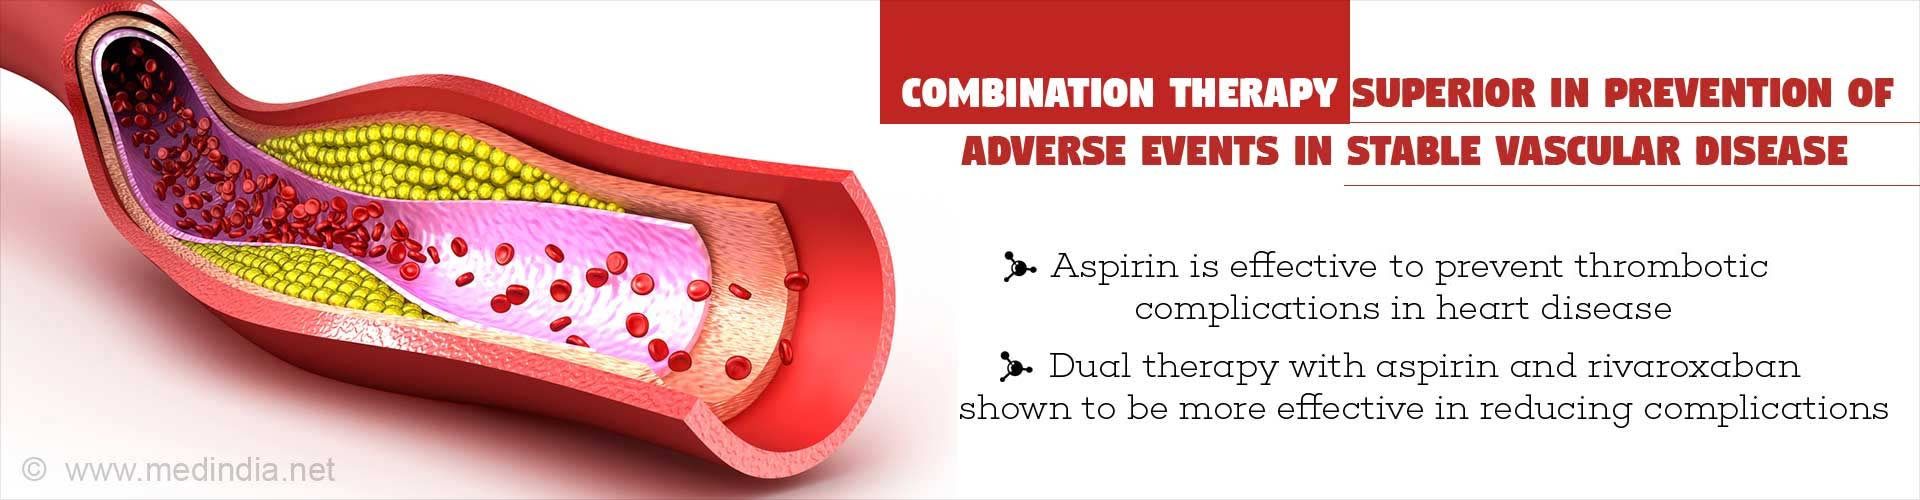 Combination therapy superior in prevention of adverse events in stable vascular disease - Aspirin is effective to prevent thrombotic complications in heart disease - Dual therapy with aspirin and rivaroxaban shown to be more effective in reducing complicaions